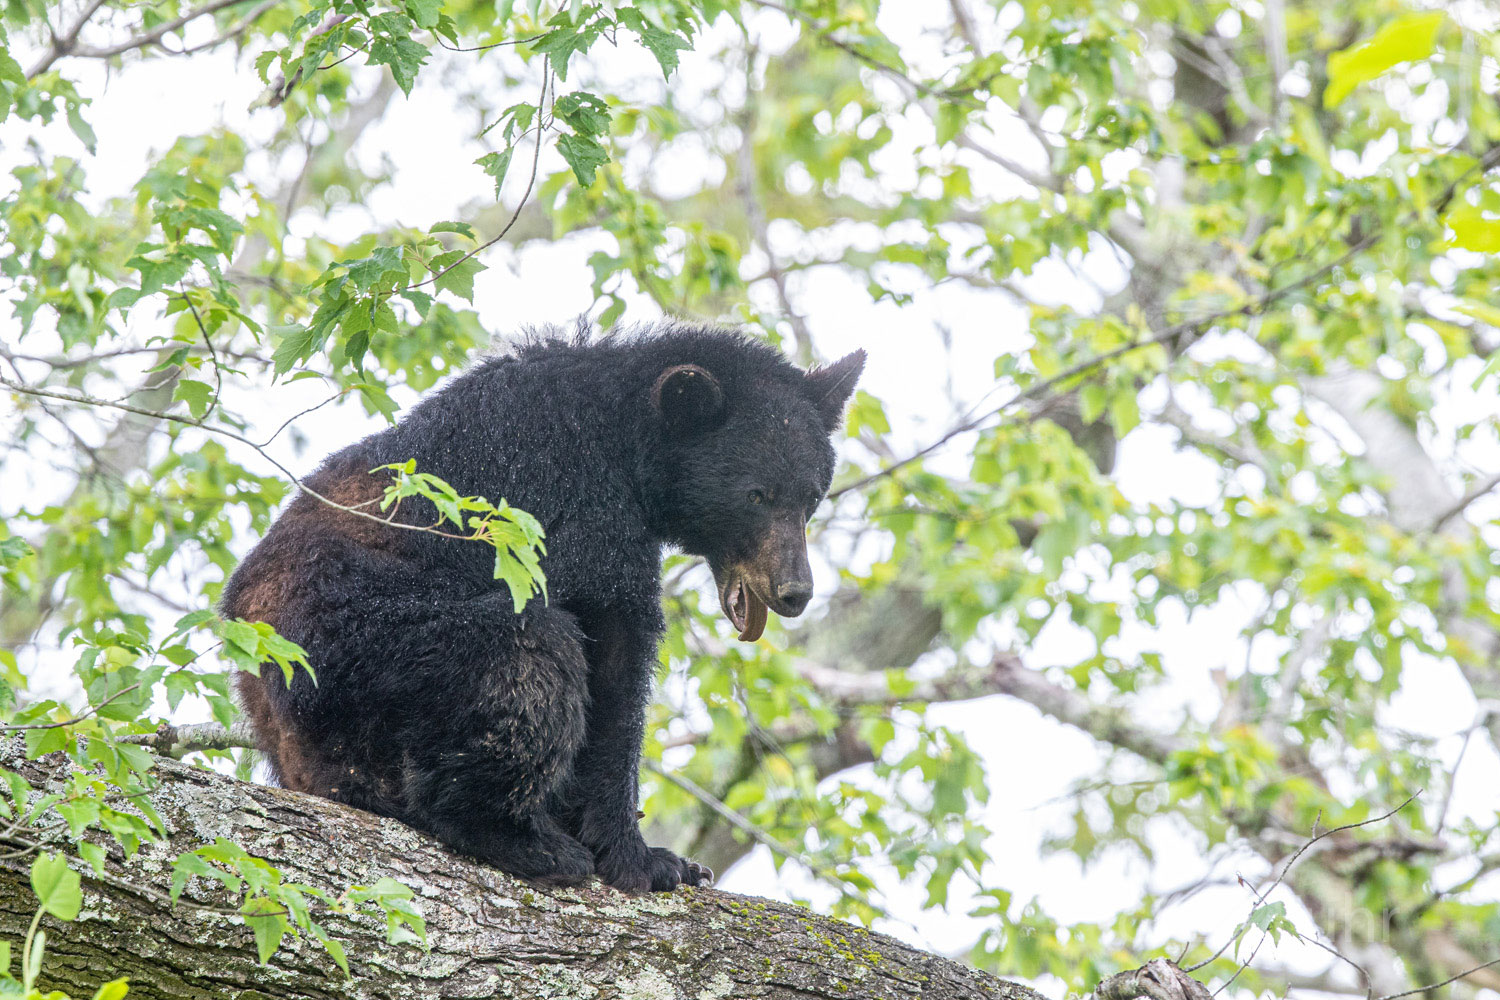 After awaking, this black bear mom slowly stretches, yawns and seems to orient herself. In reality, she is keenly aware of everything...